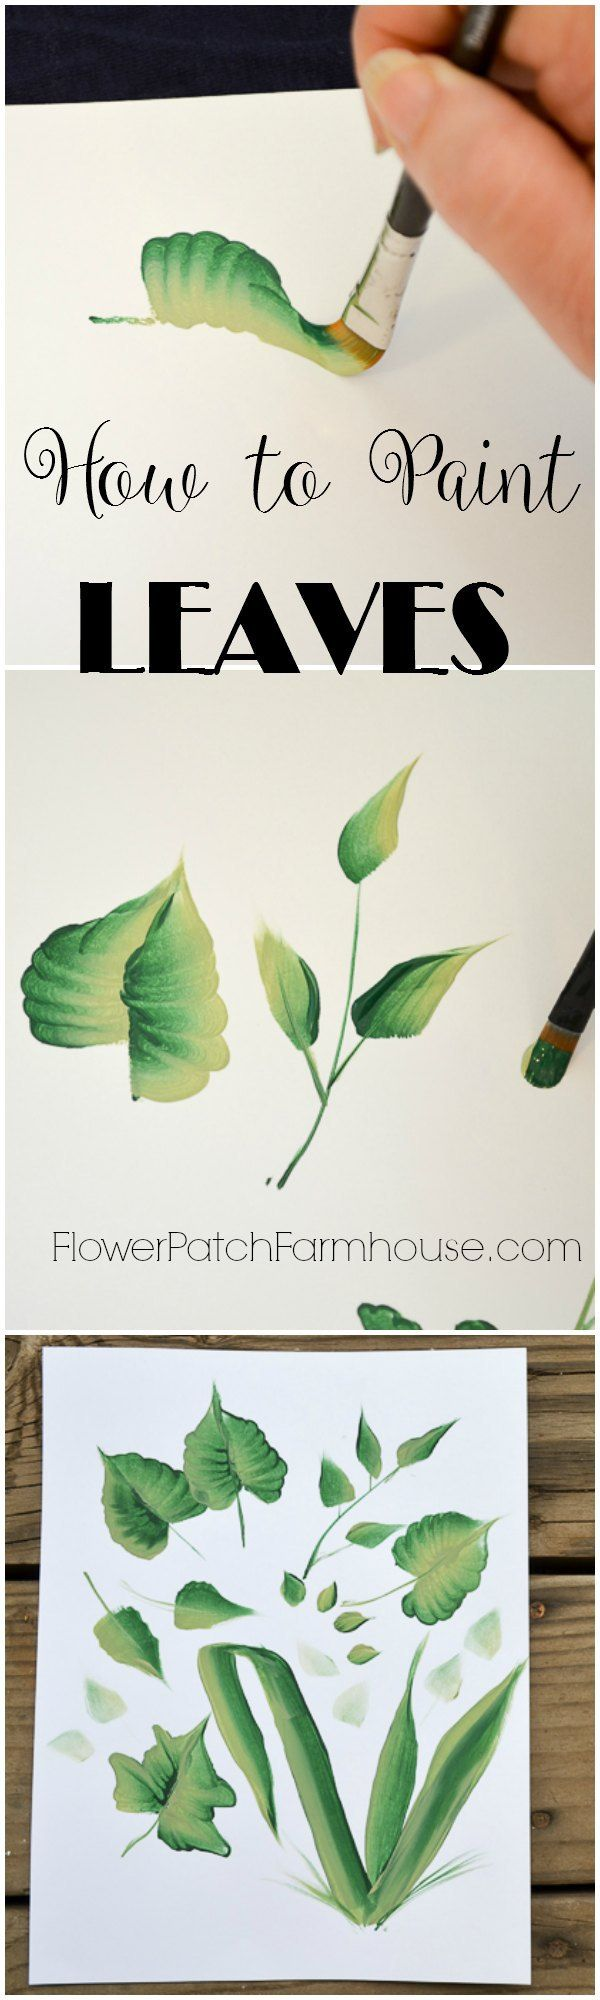 Learn how to paint leaves. Basic step by step with video so you can paint great leaves in minutes!